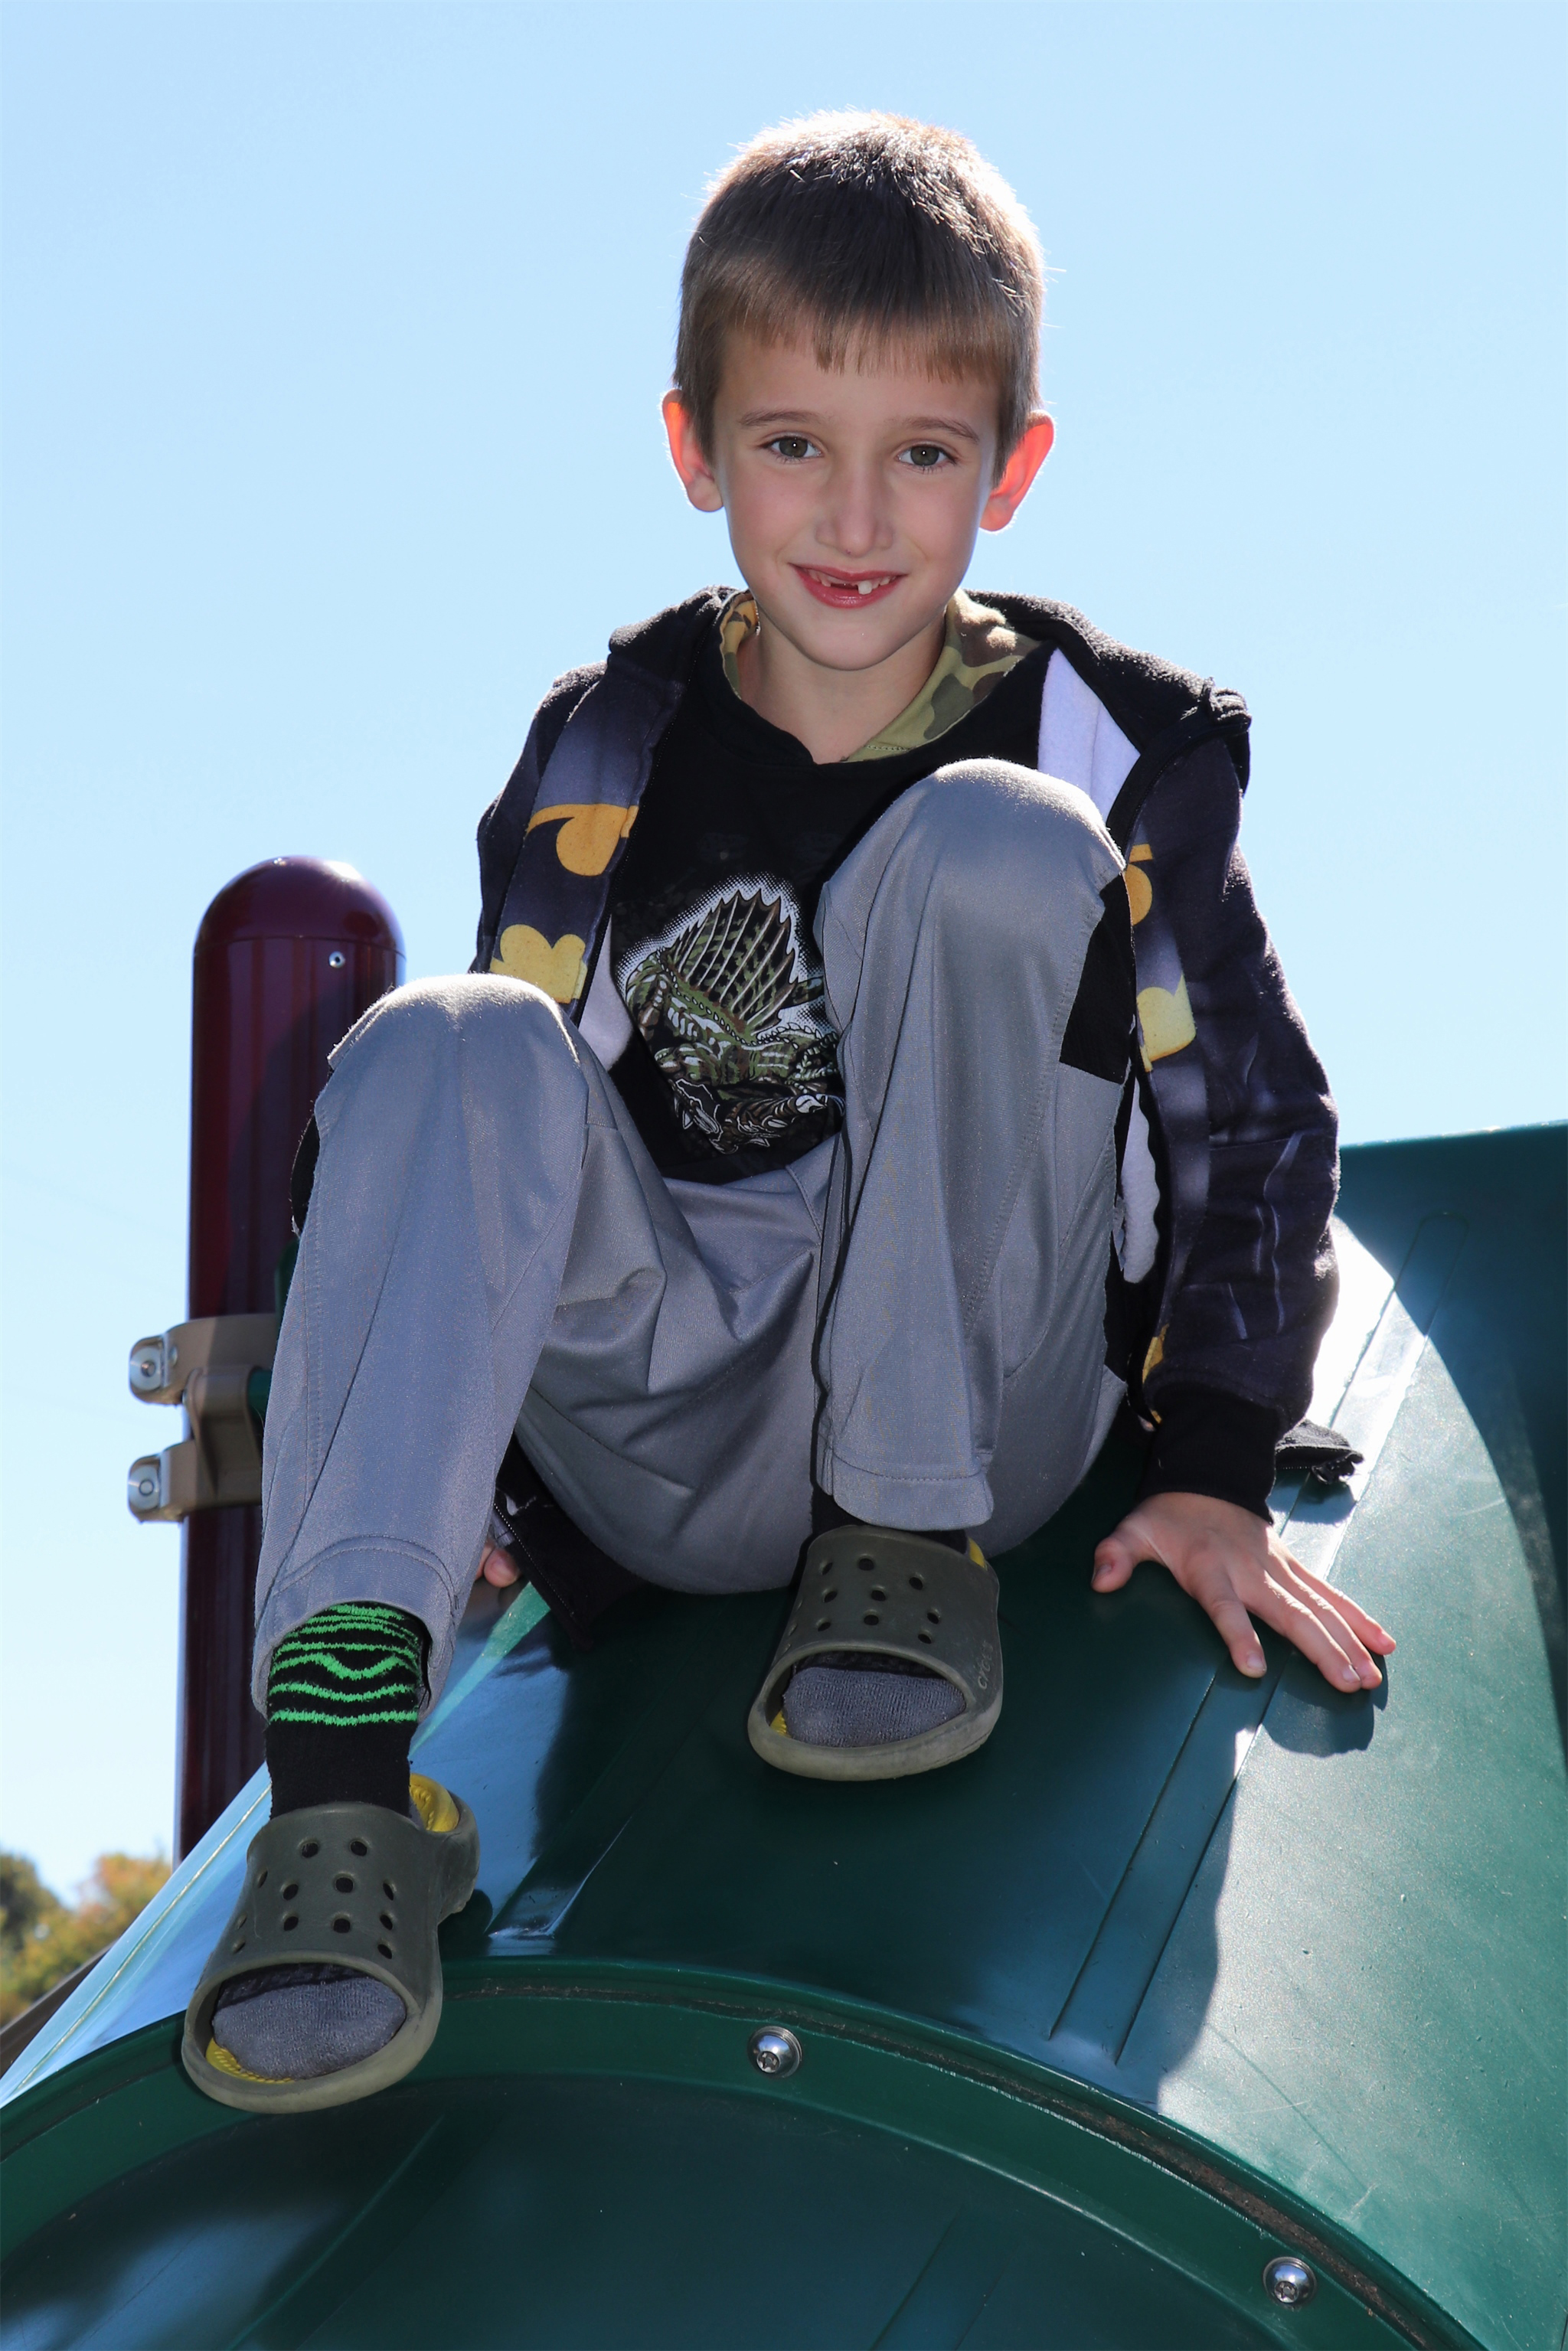 This boy playing at Torpy Park in Minocqua is all smiles. Kim Johnson photo